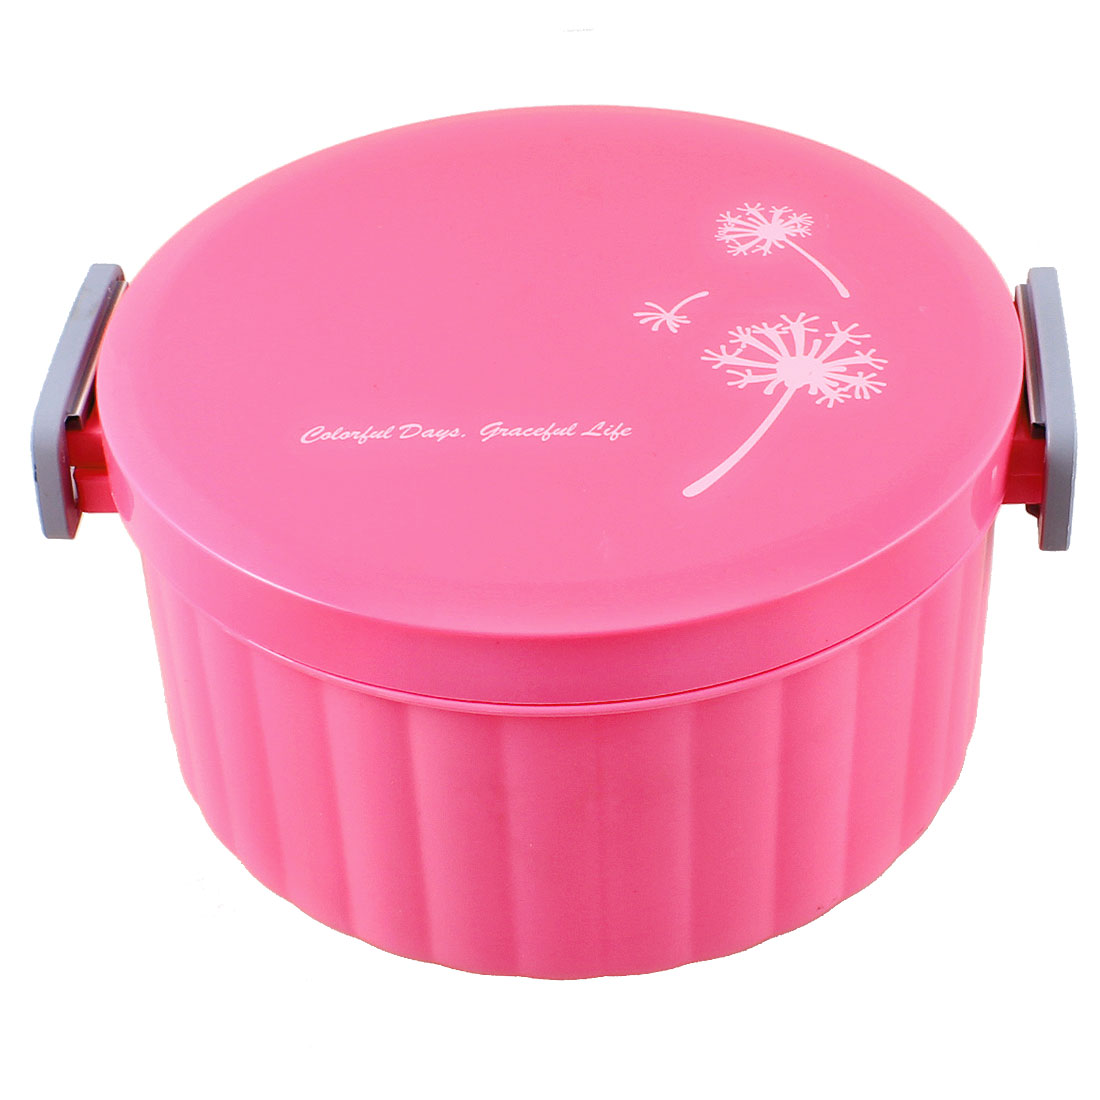 Household Magenta Plastic Round Lunch Box Case Food Container